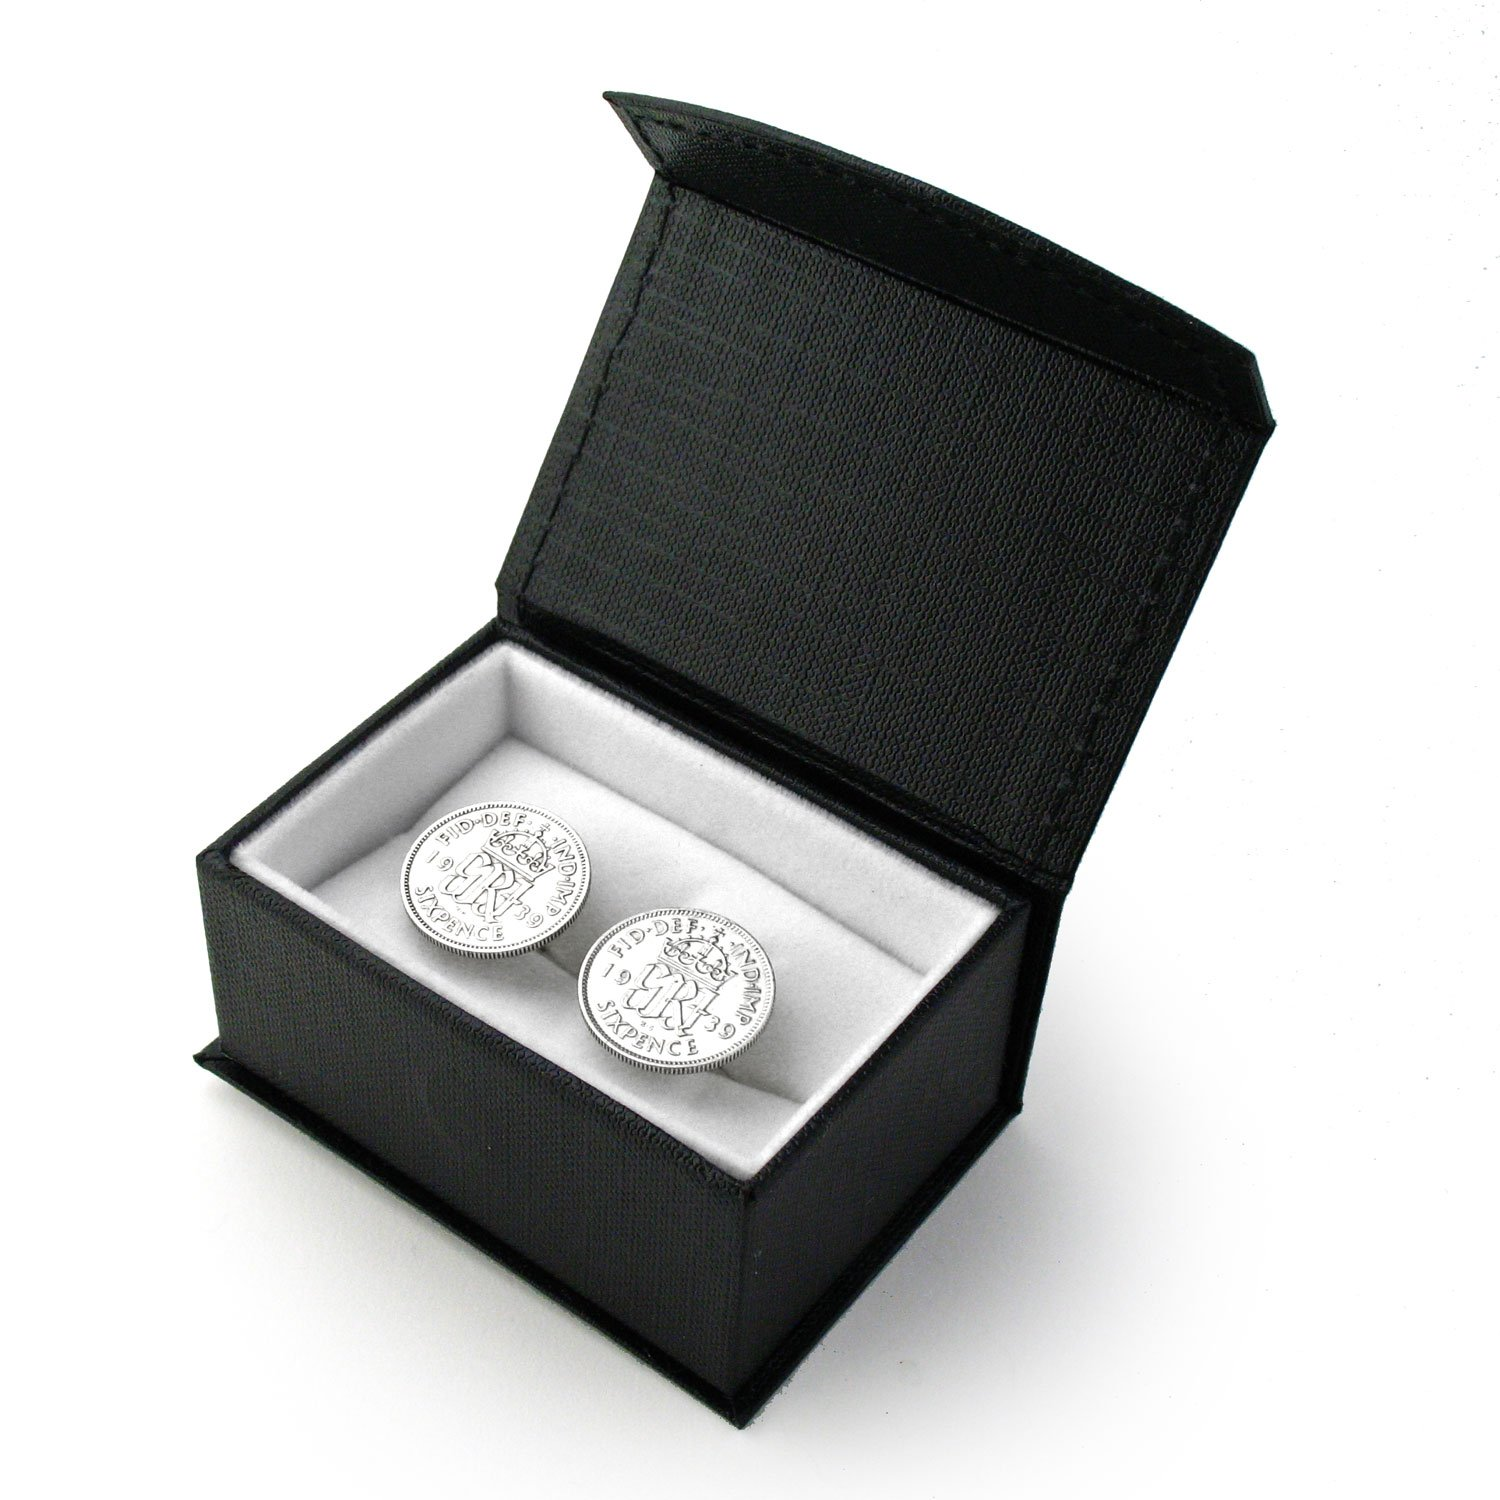 Authentic Sixpence Cufflinks